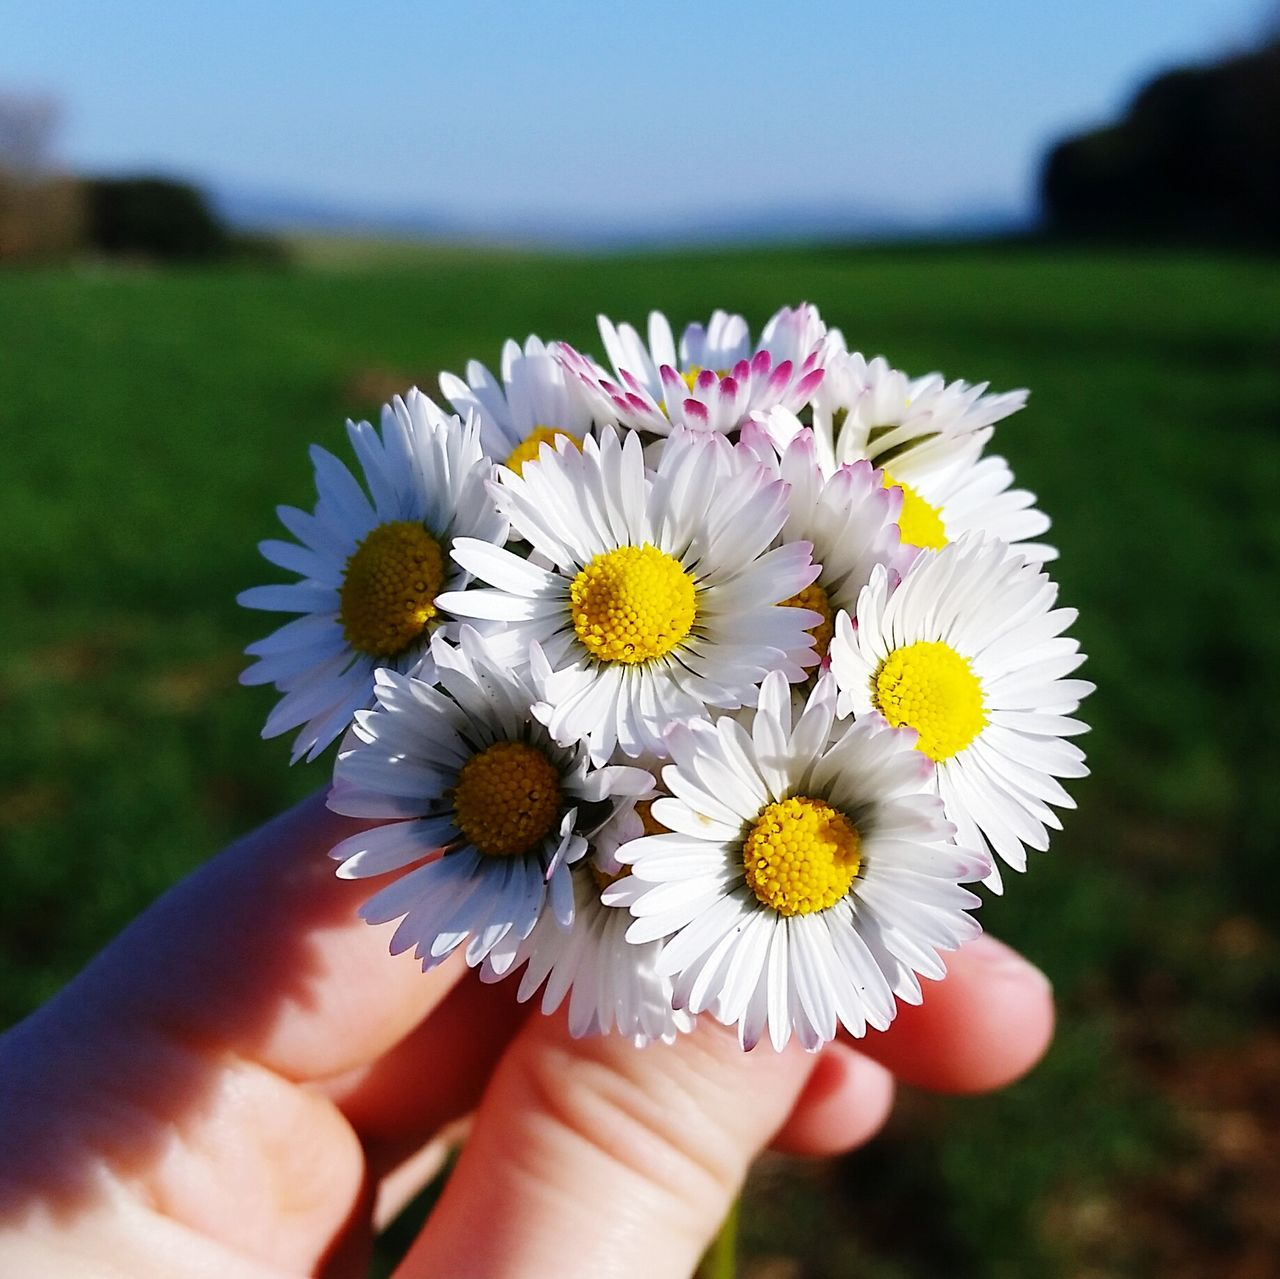 flower, human hand, real people, beauty in nature, one person, yellow, fragility, petal, nature, human body part, freshness, focus on foreground, outdoors, flower head, close-up, unrecognizable person, day, holding, pollen, plant, people